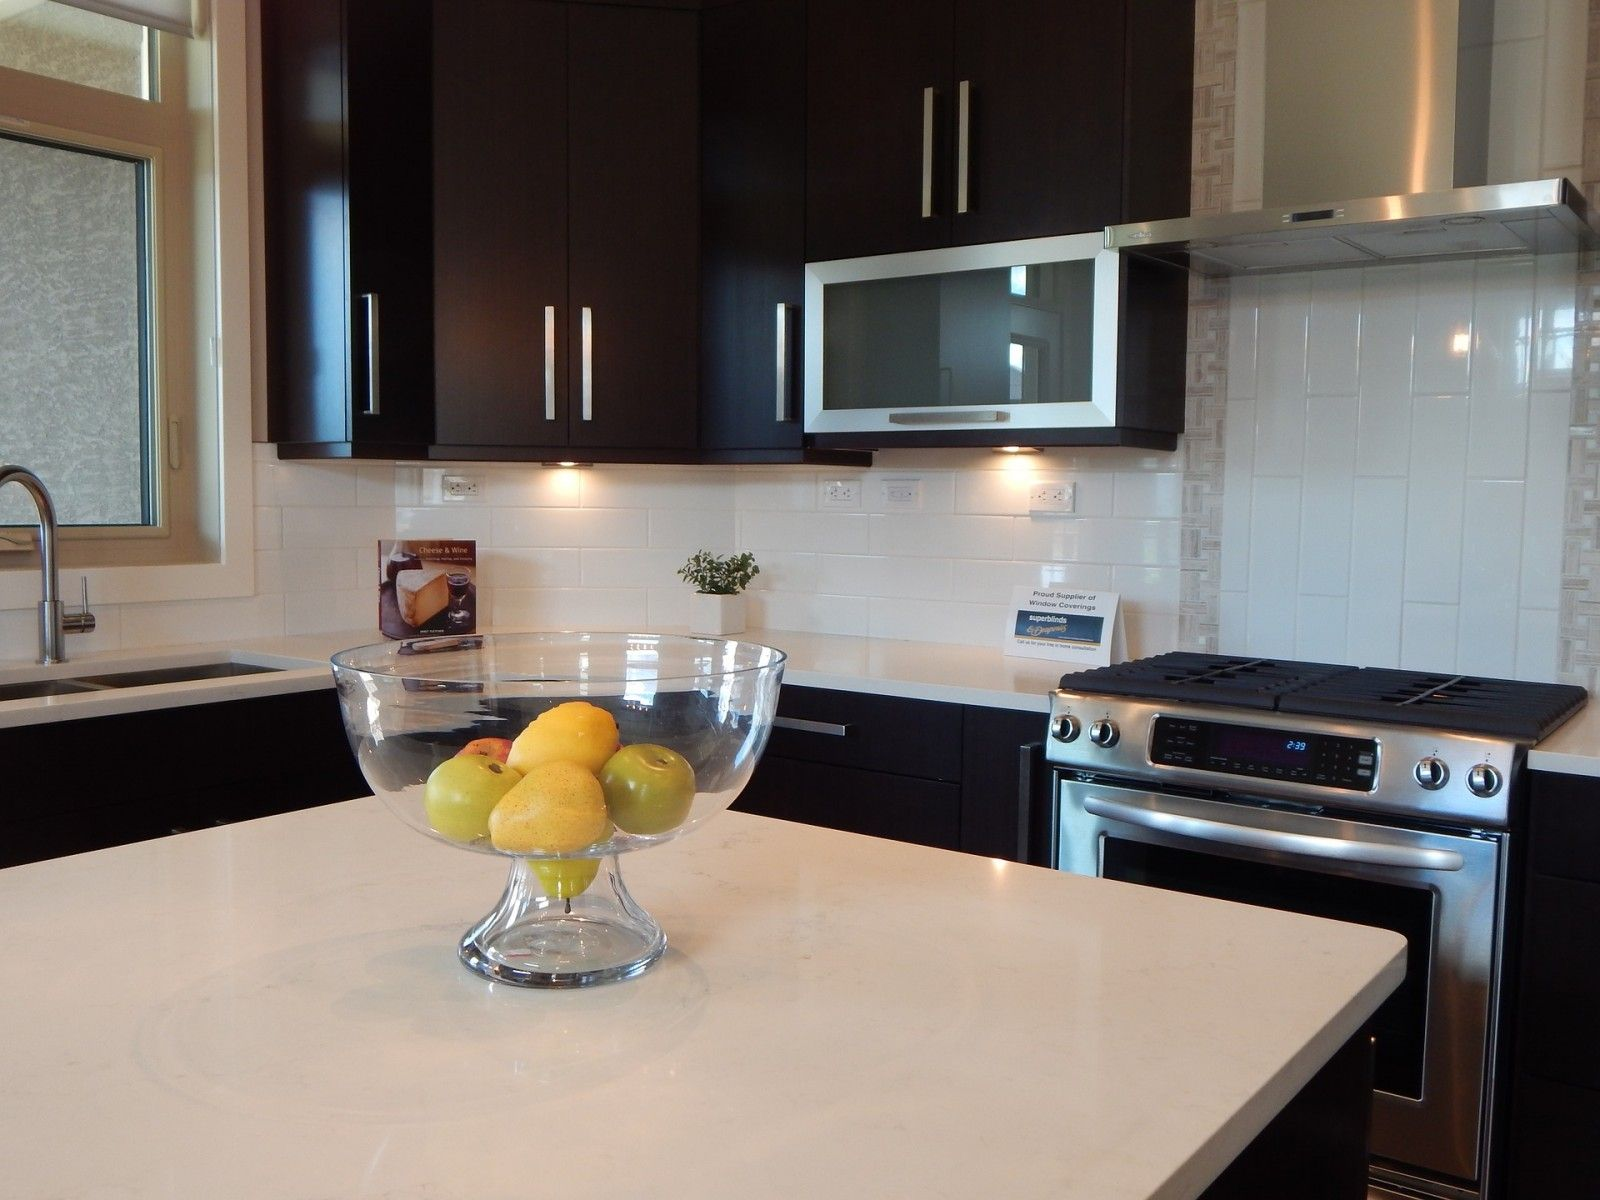 4 Rules for Decluttering Your Kitchen Appliances - Small Design Ideas